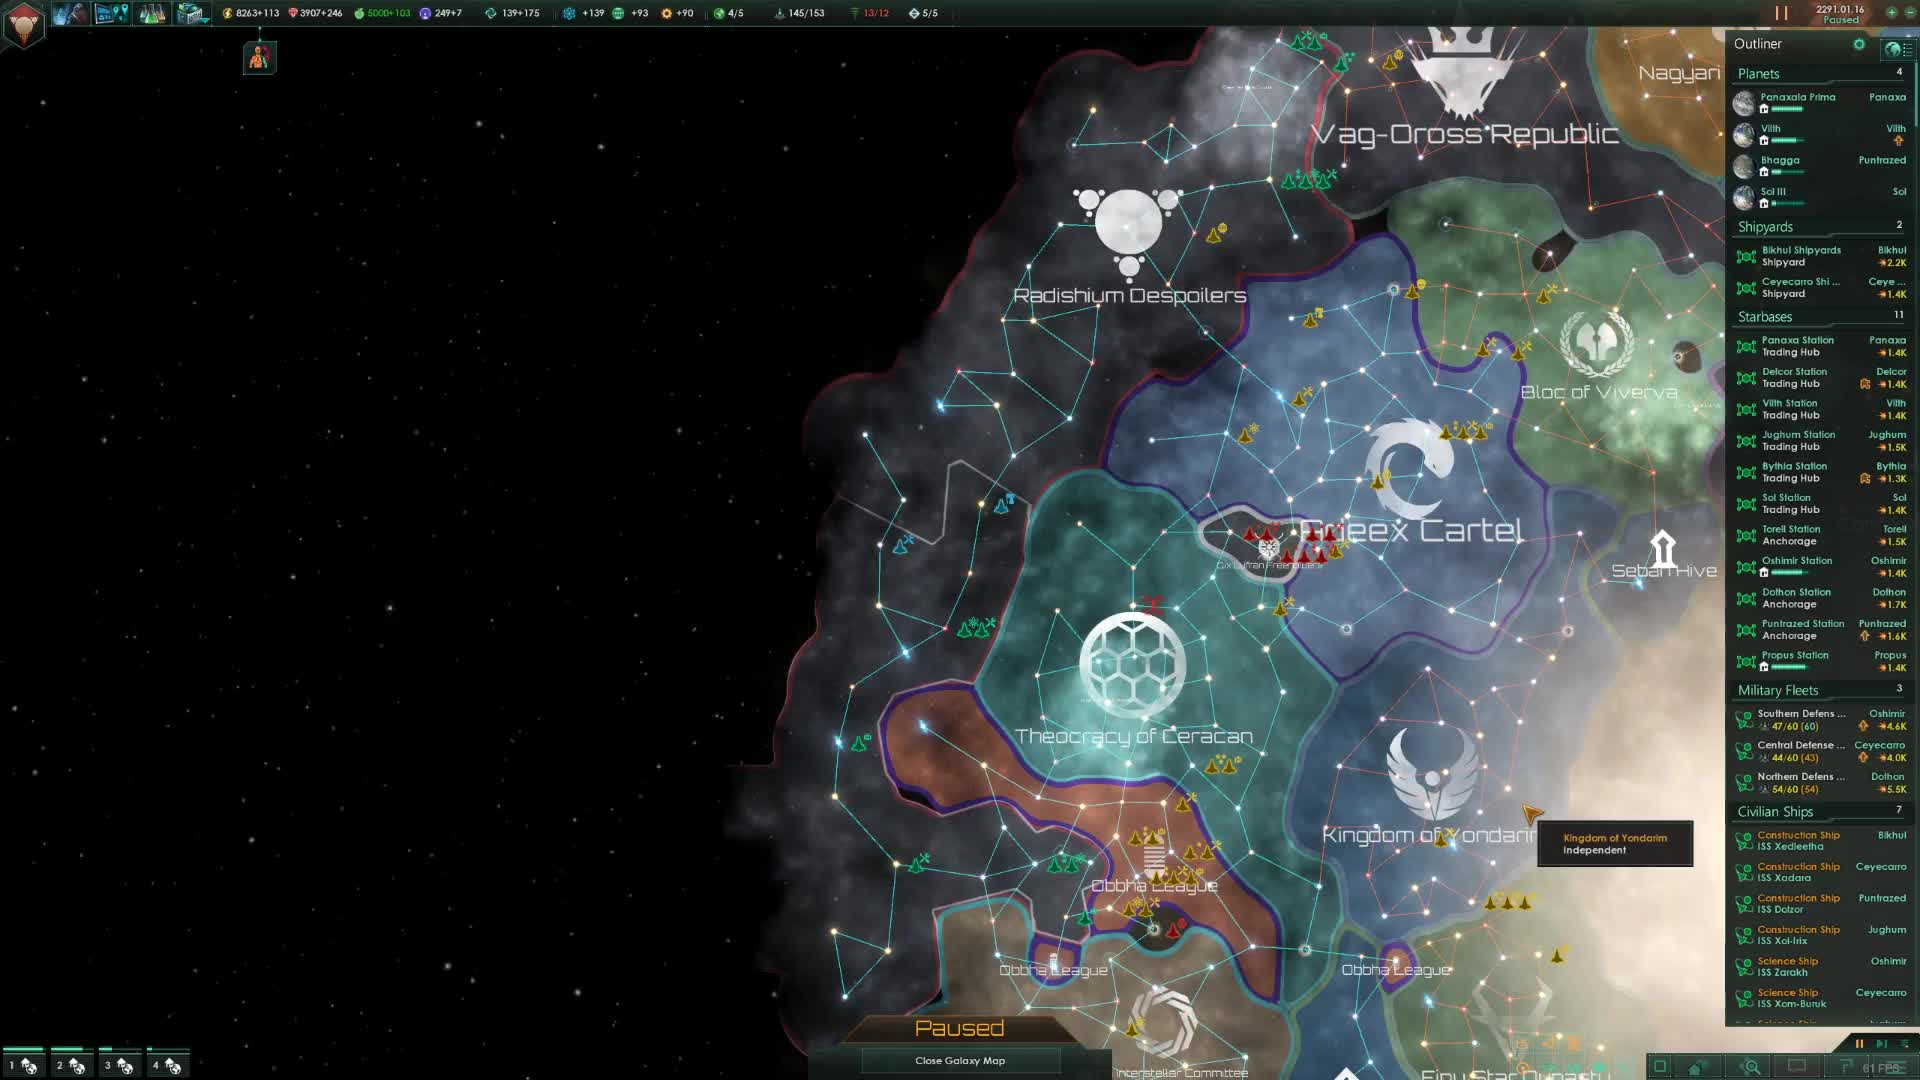 stellaris-dashboard GIFs